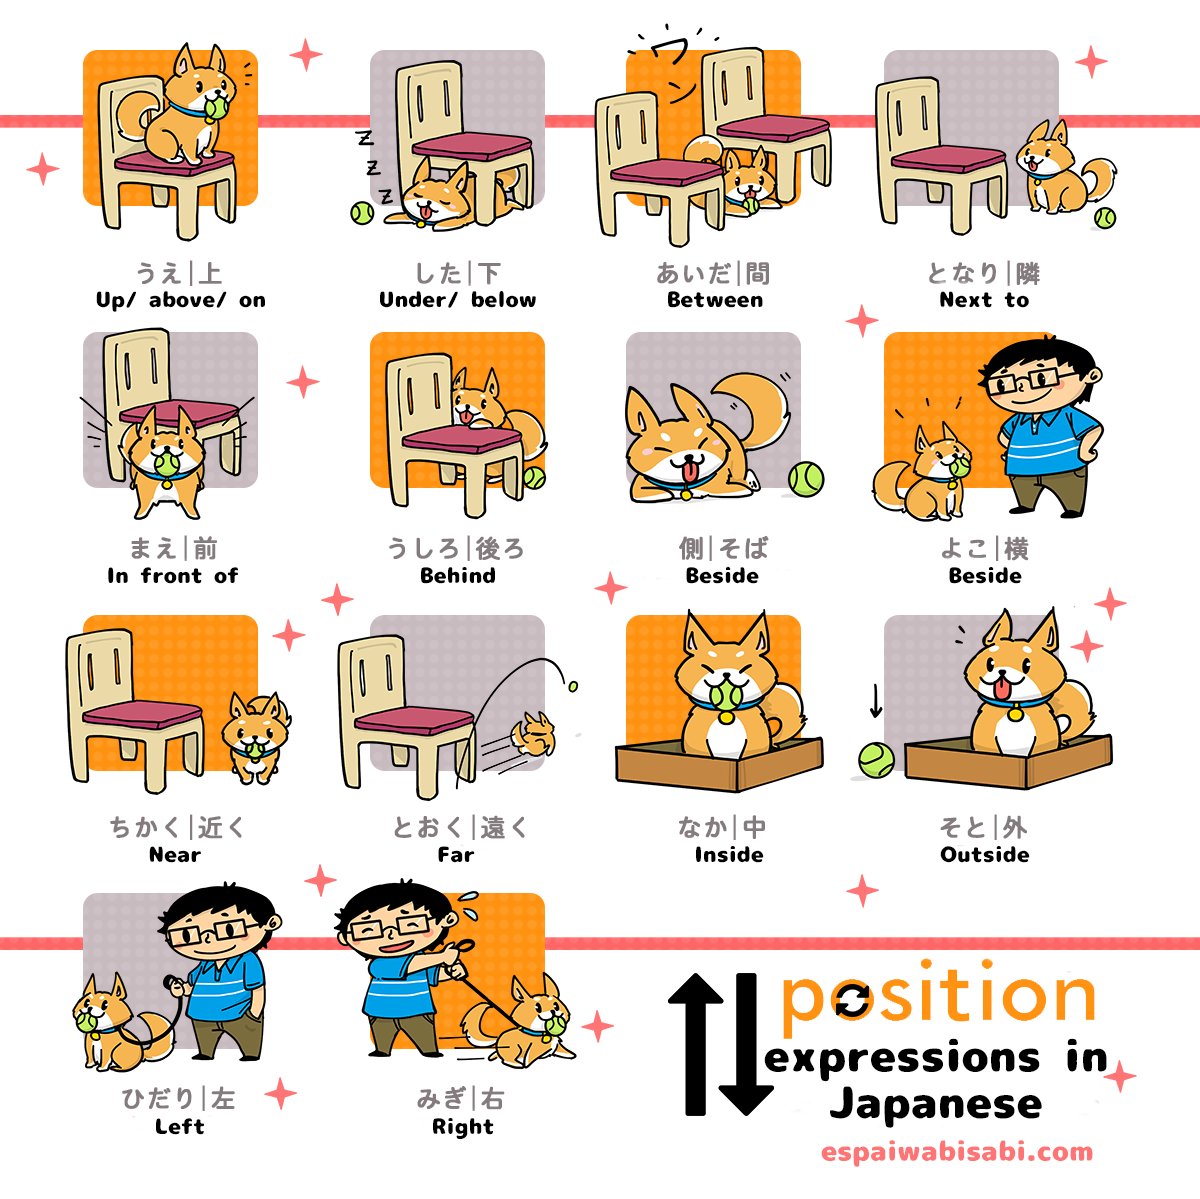 Position expressions in Japanese!